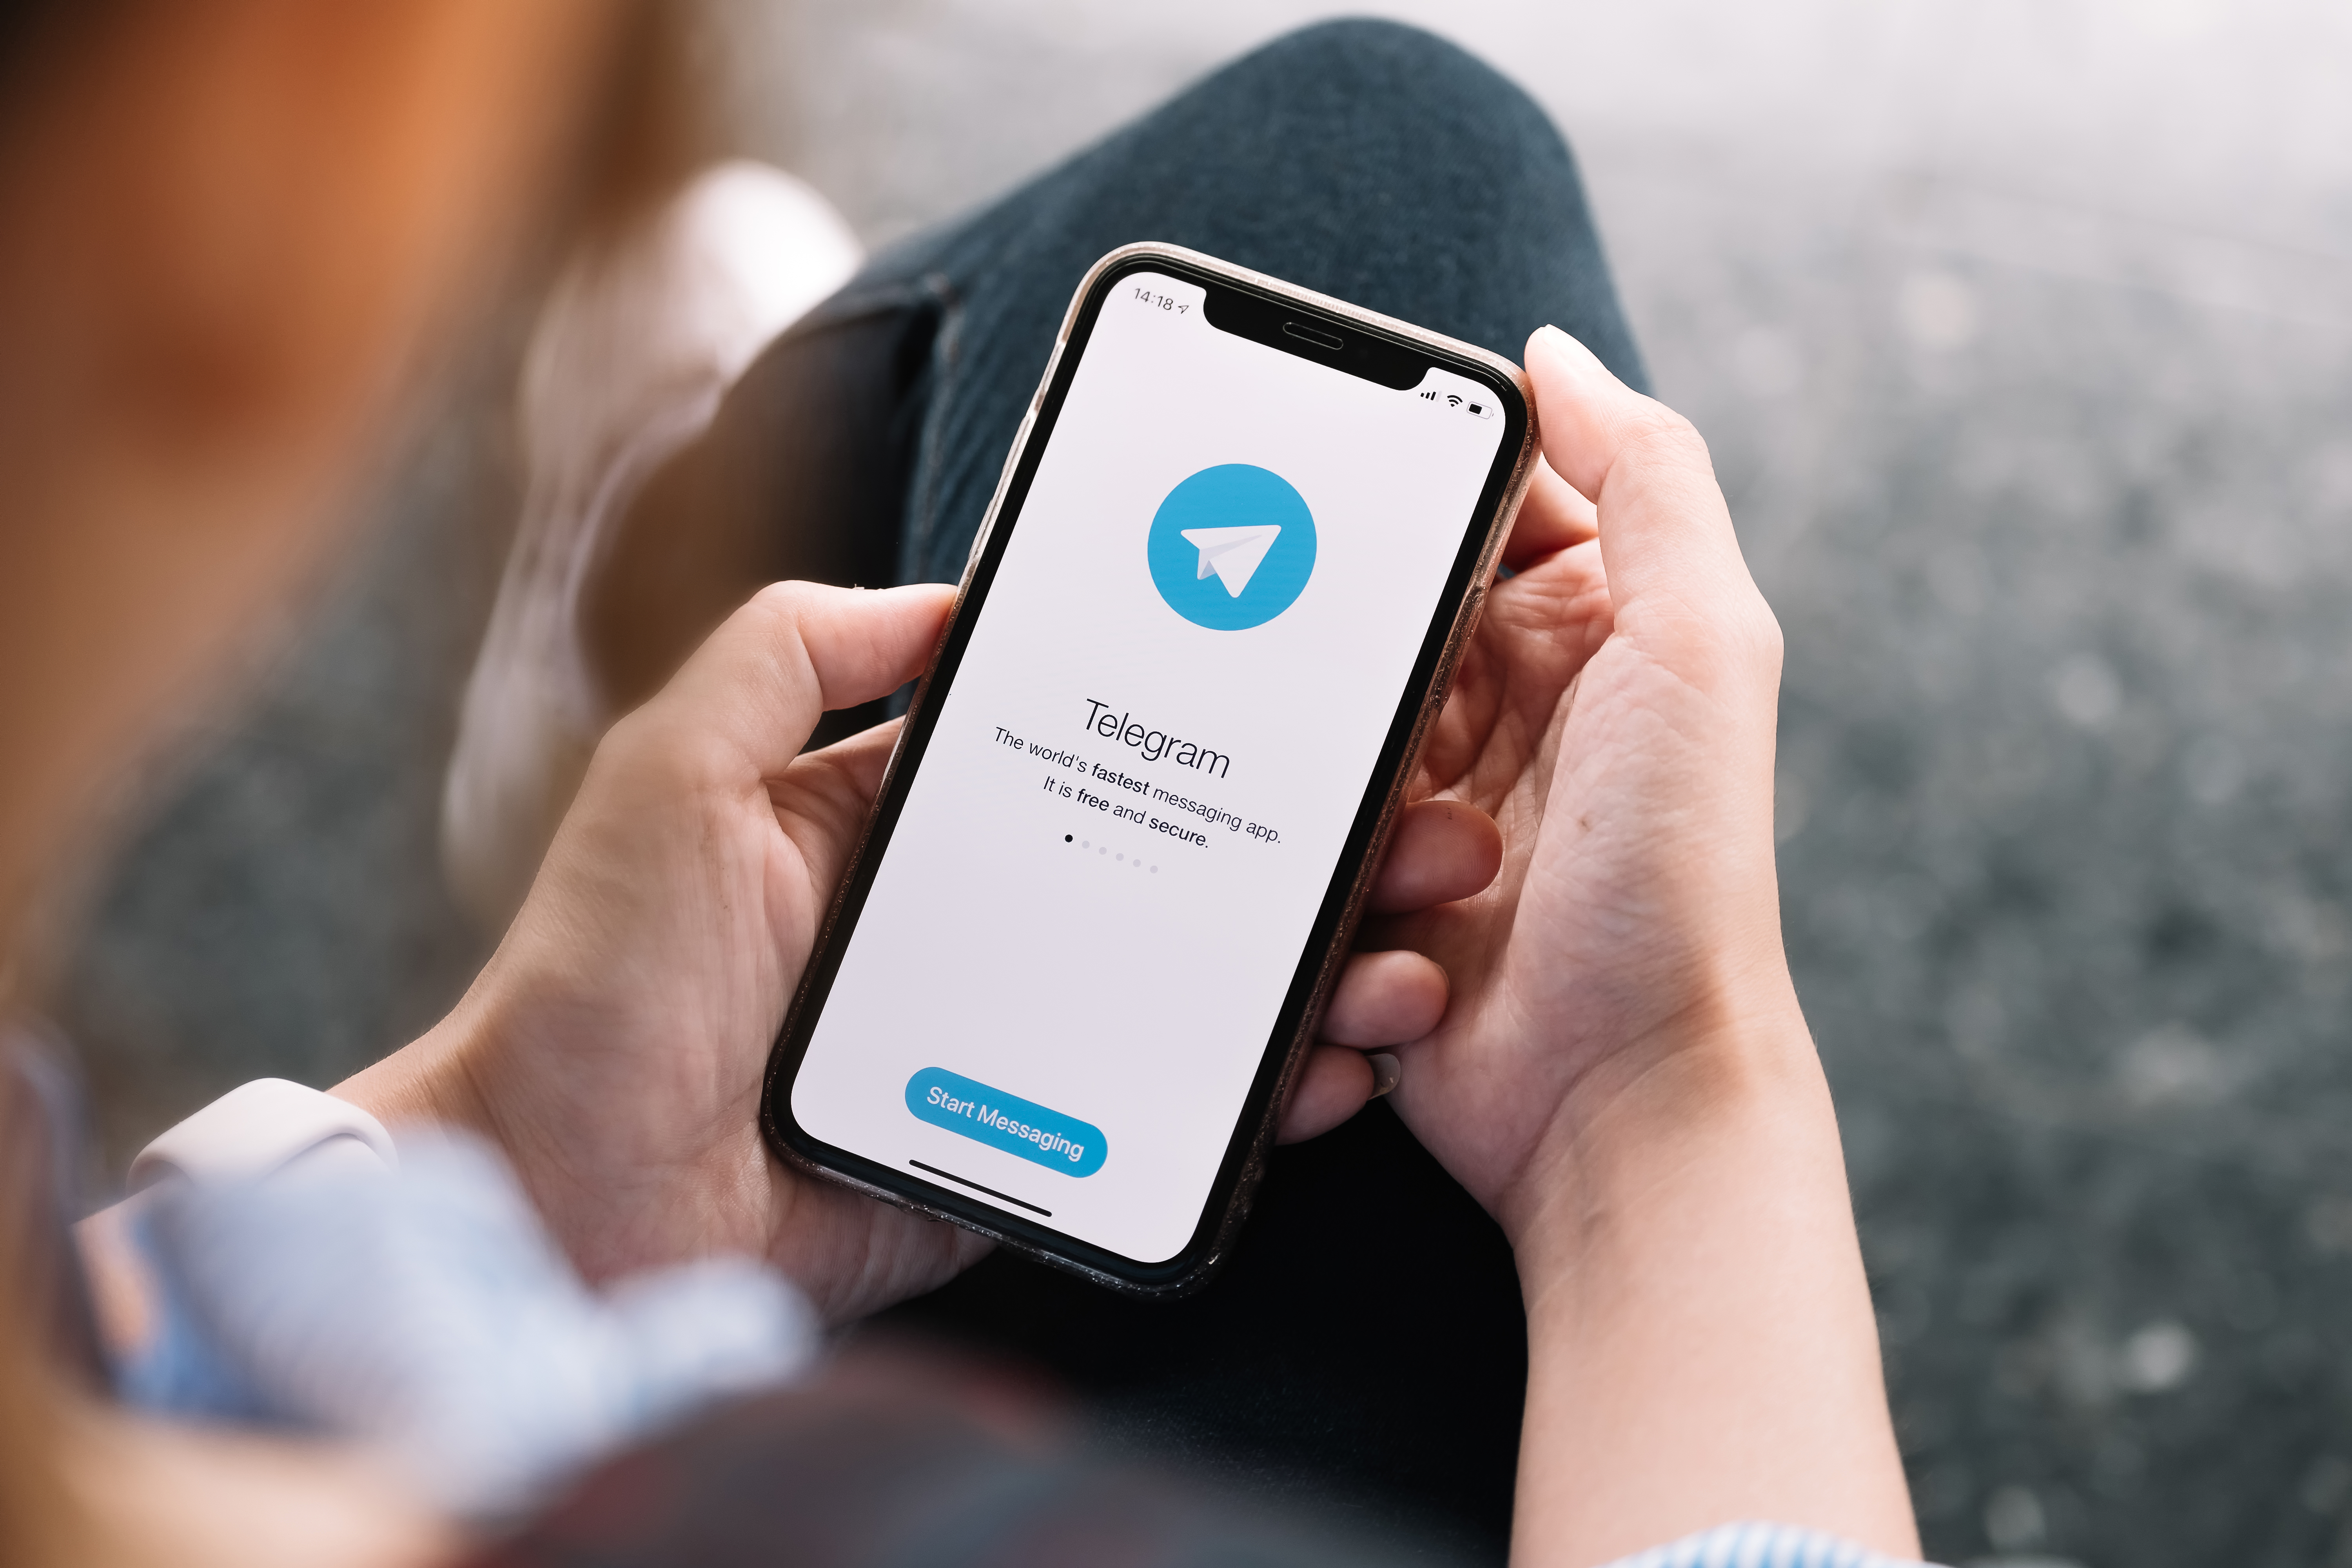 Is a Telegram IPO good for messaging app investments?